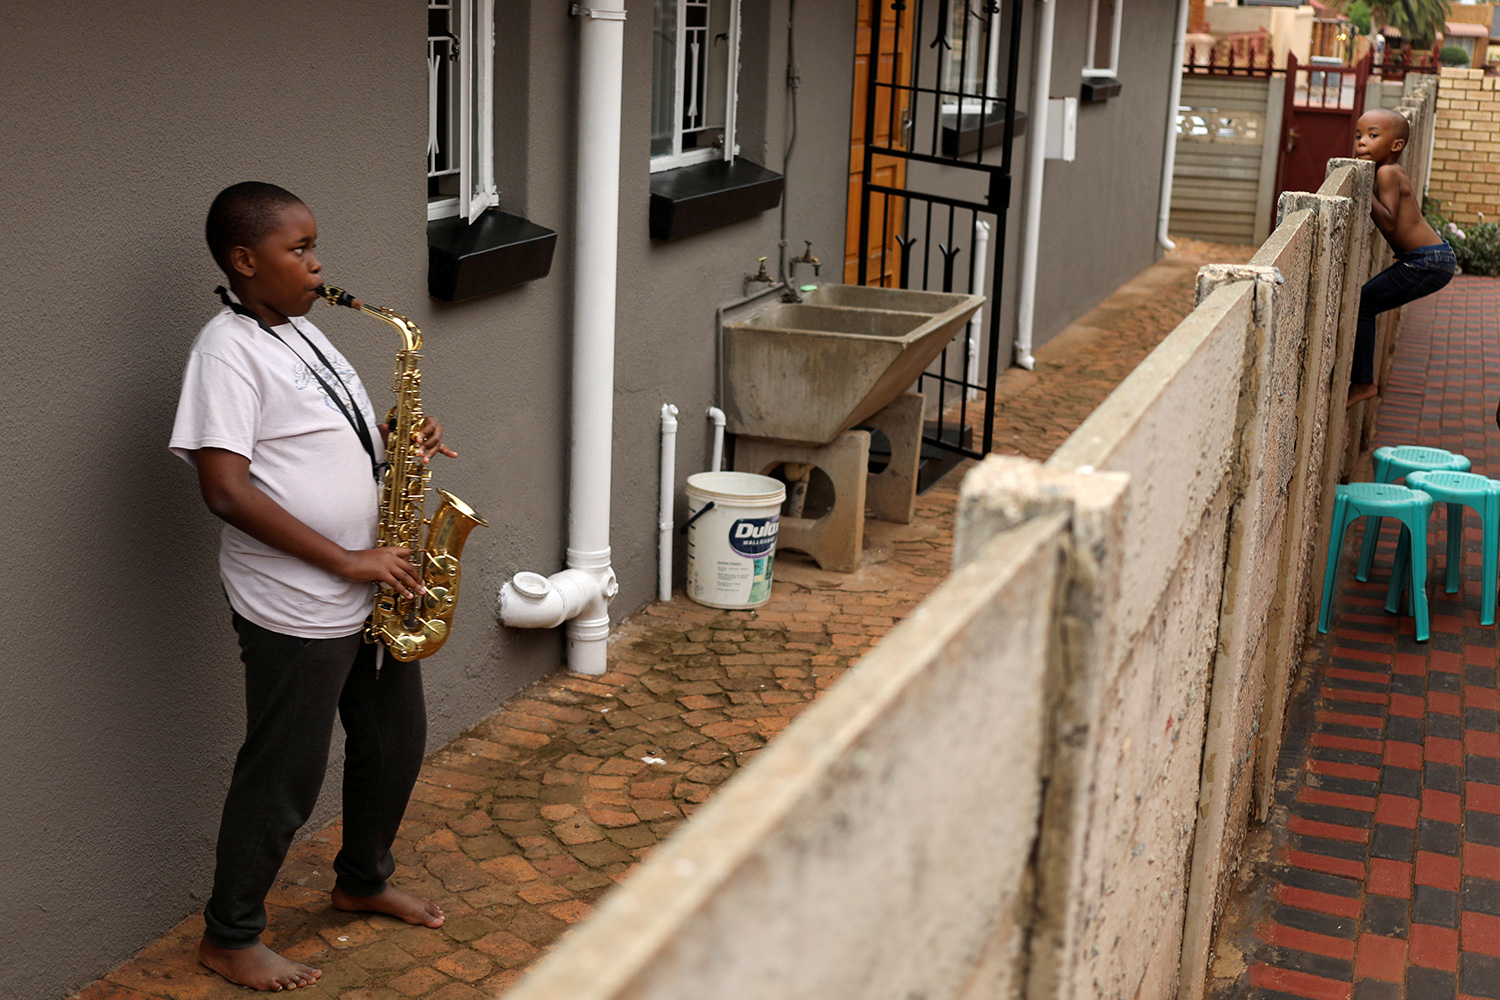 The photo shows a teenage boy playing a huge sax while another, younger boy scambles up over a fence.